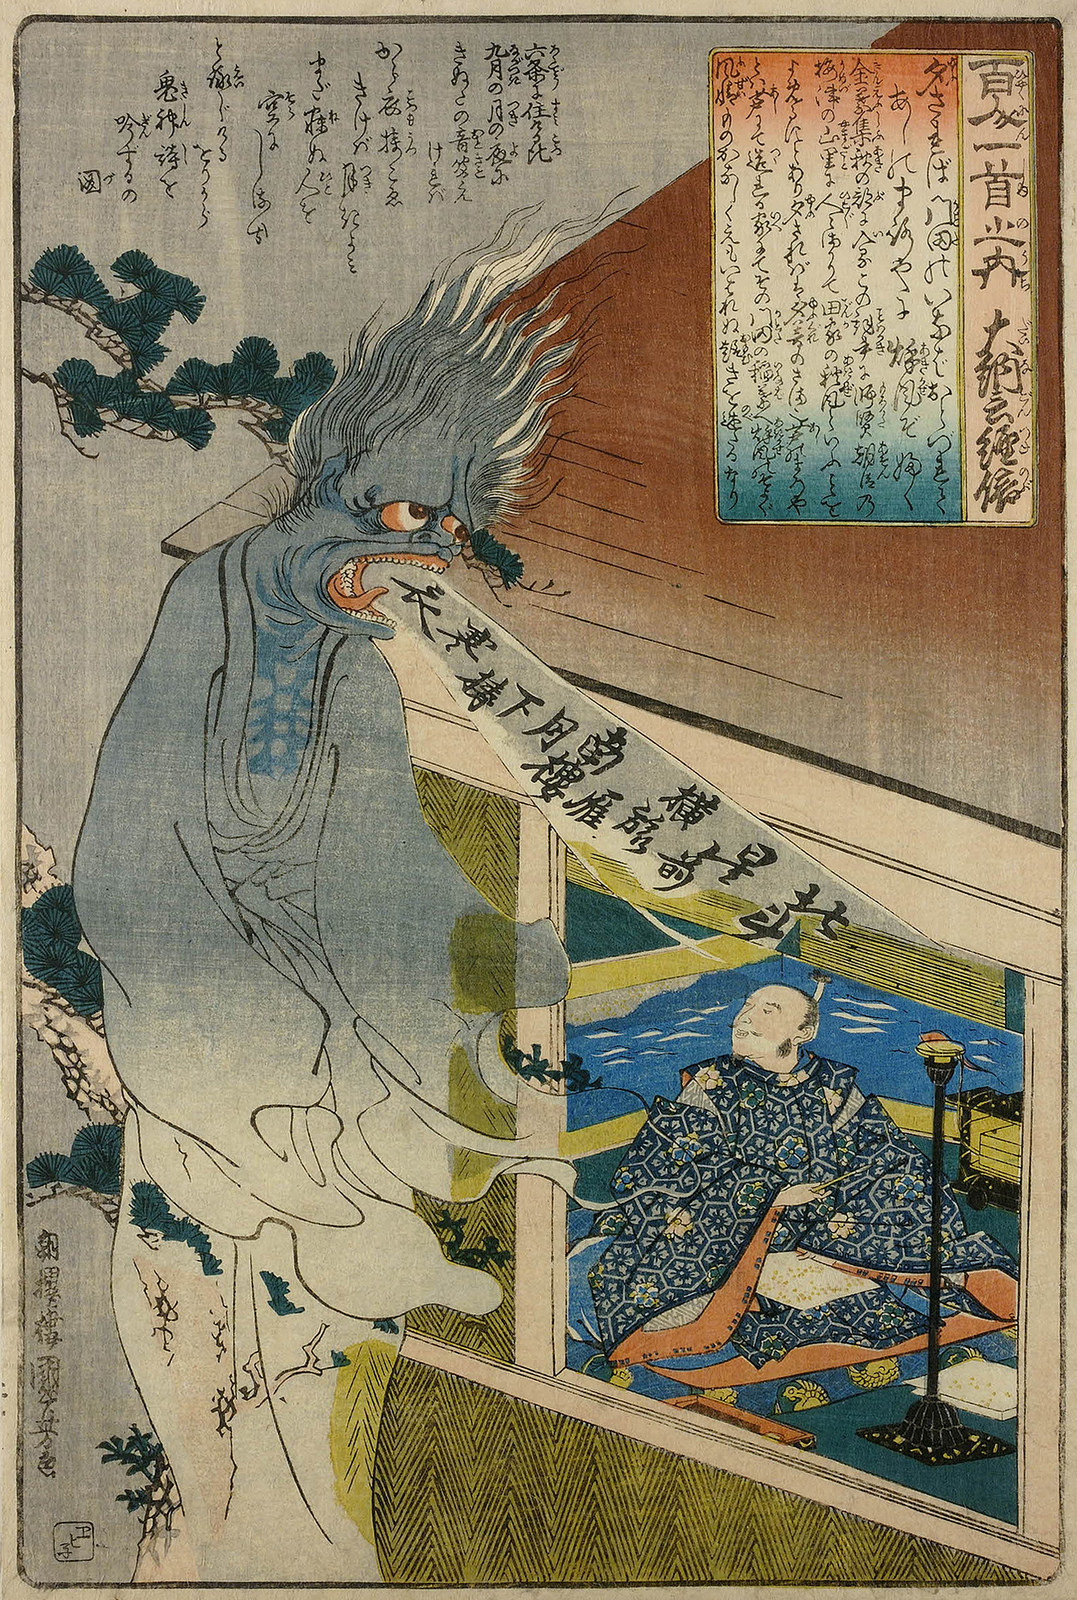 Utagawa Kuniyoshi monsters 18th Century woodcuts Japan Japanese myth legend ghosts